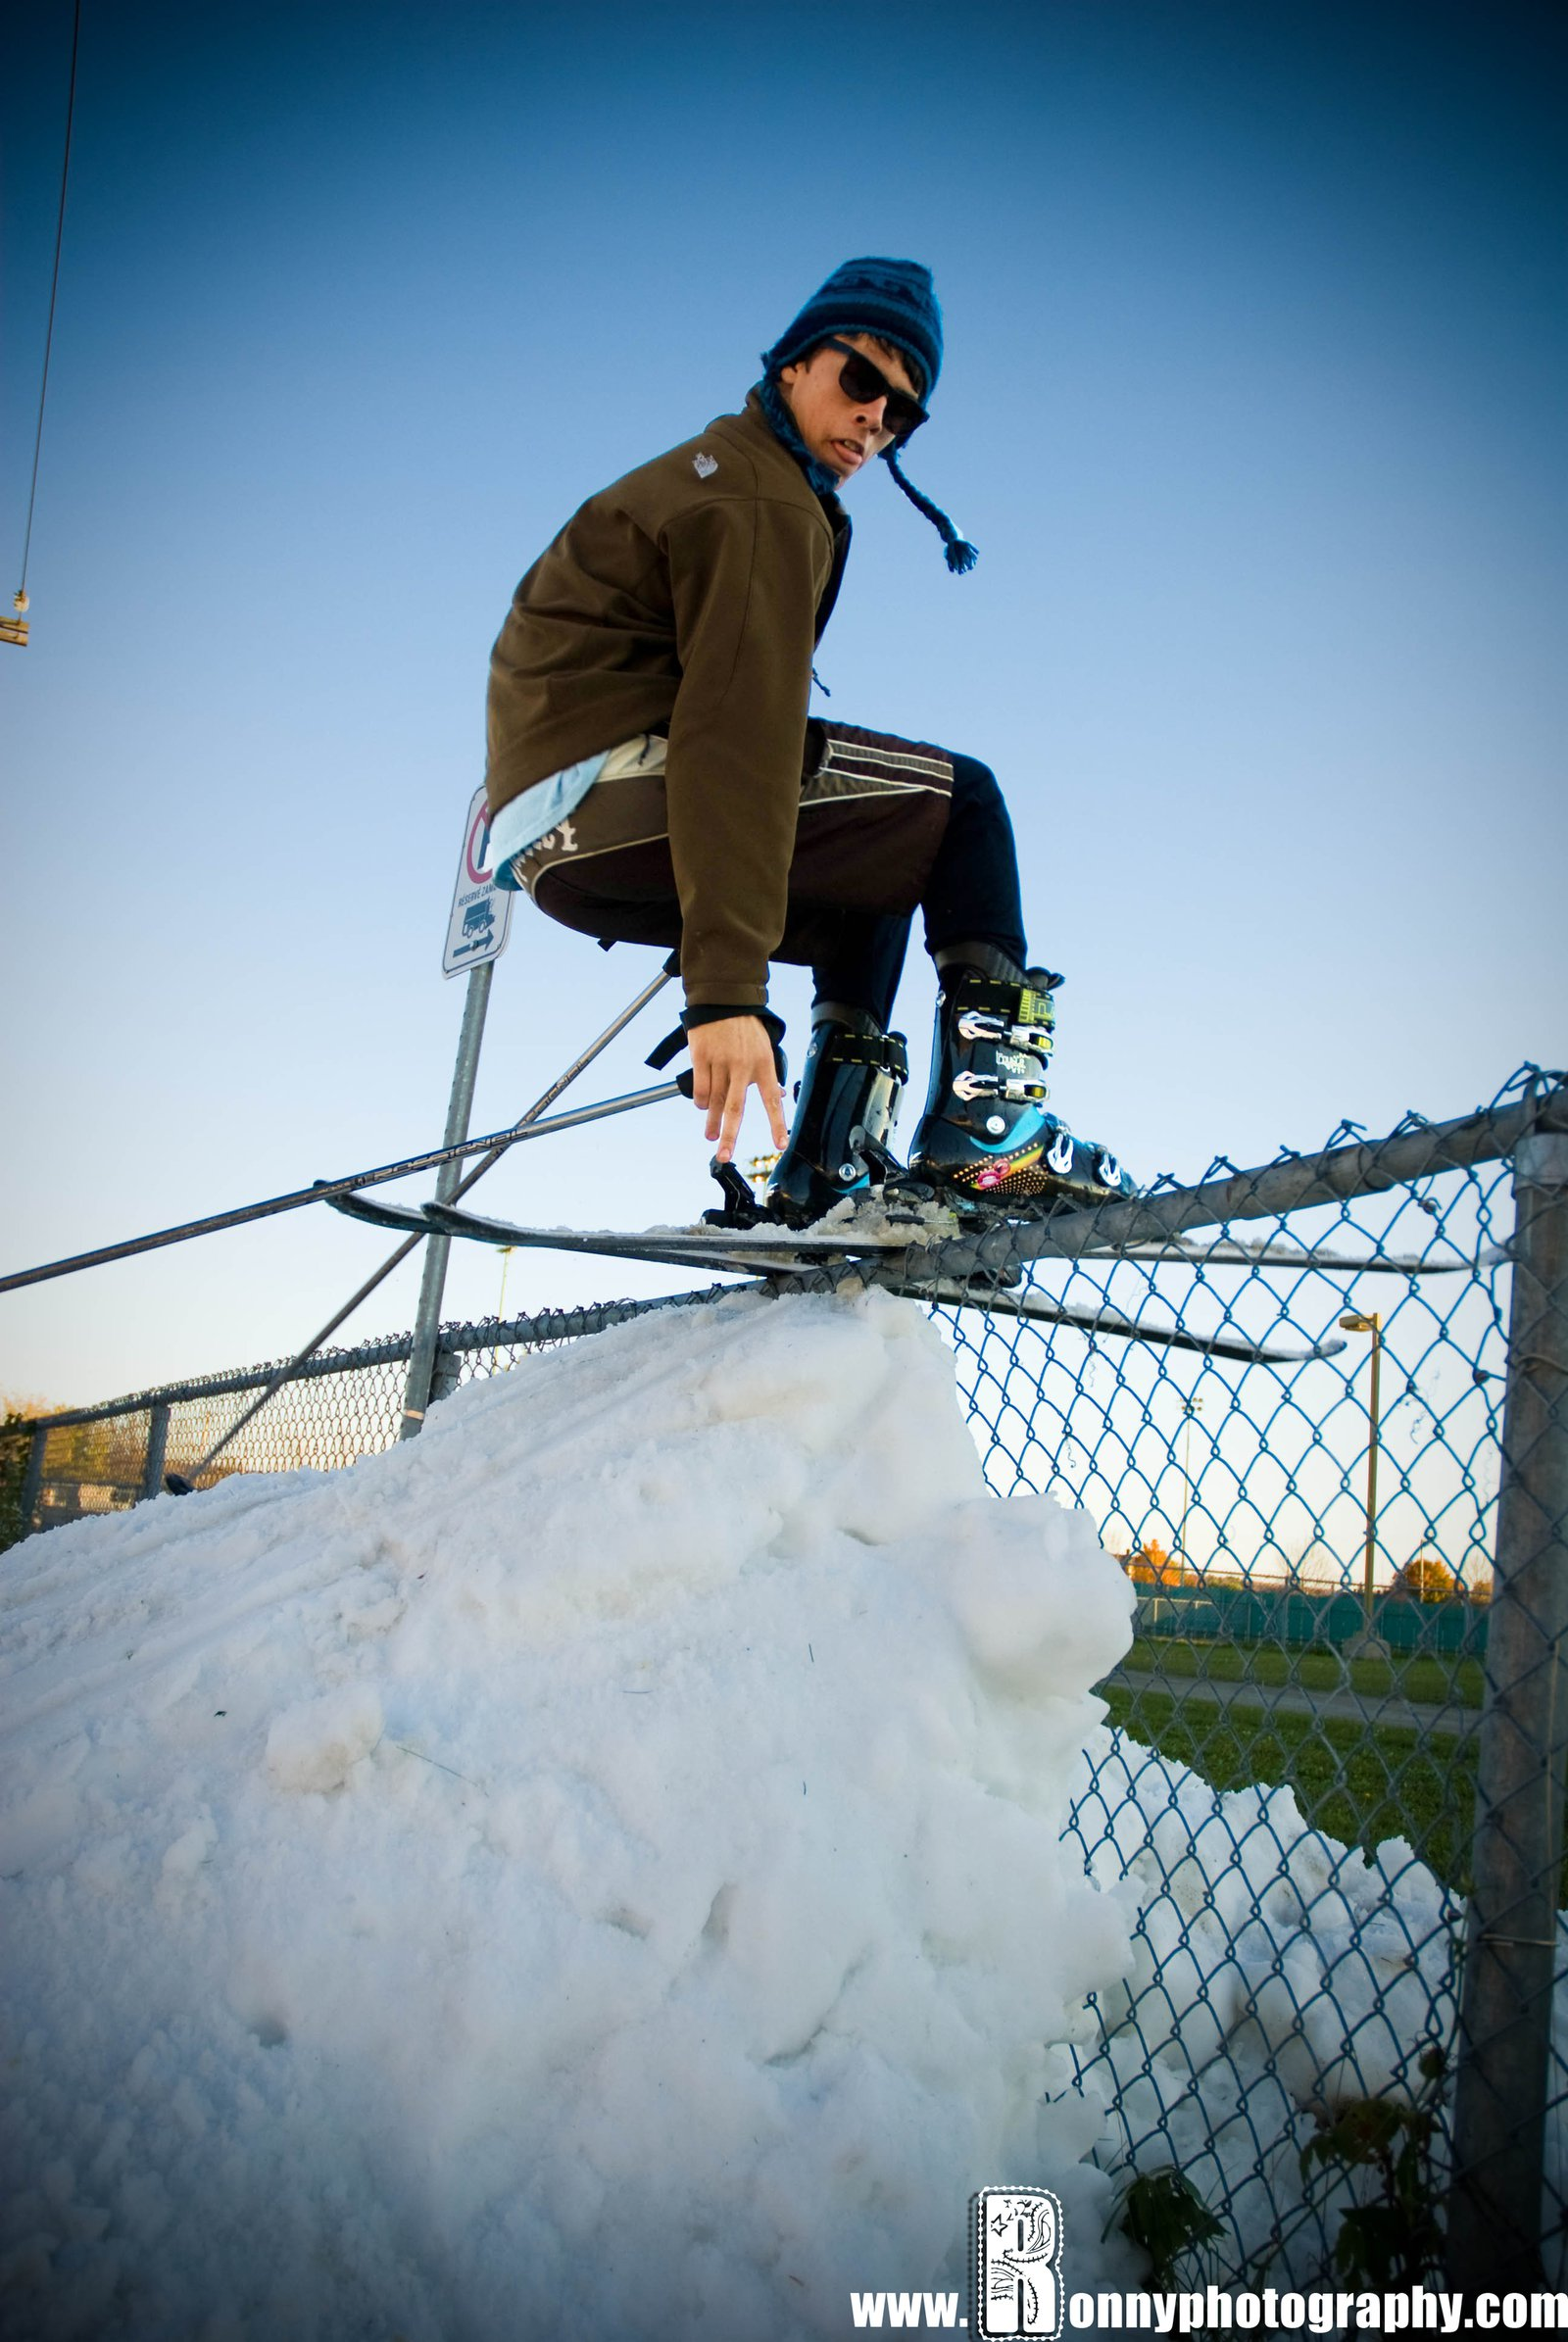 Tailpress on fence